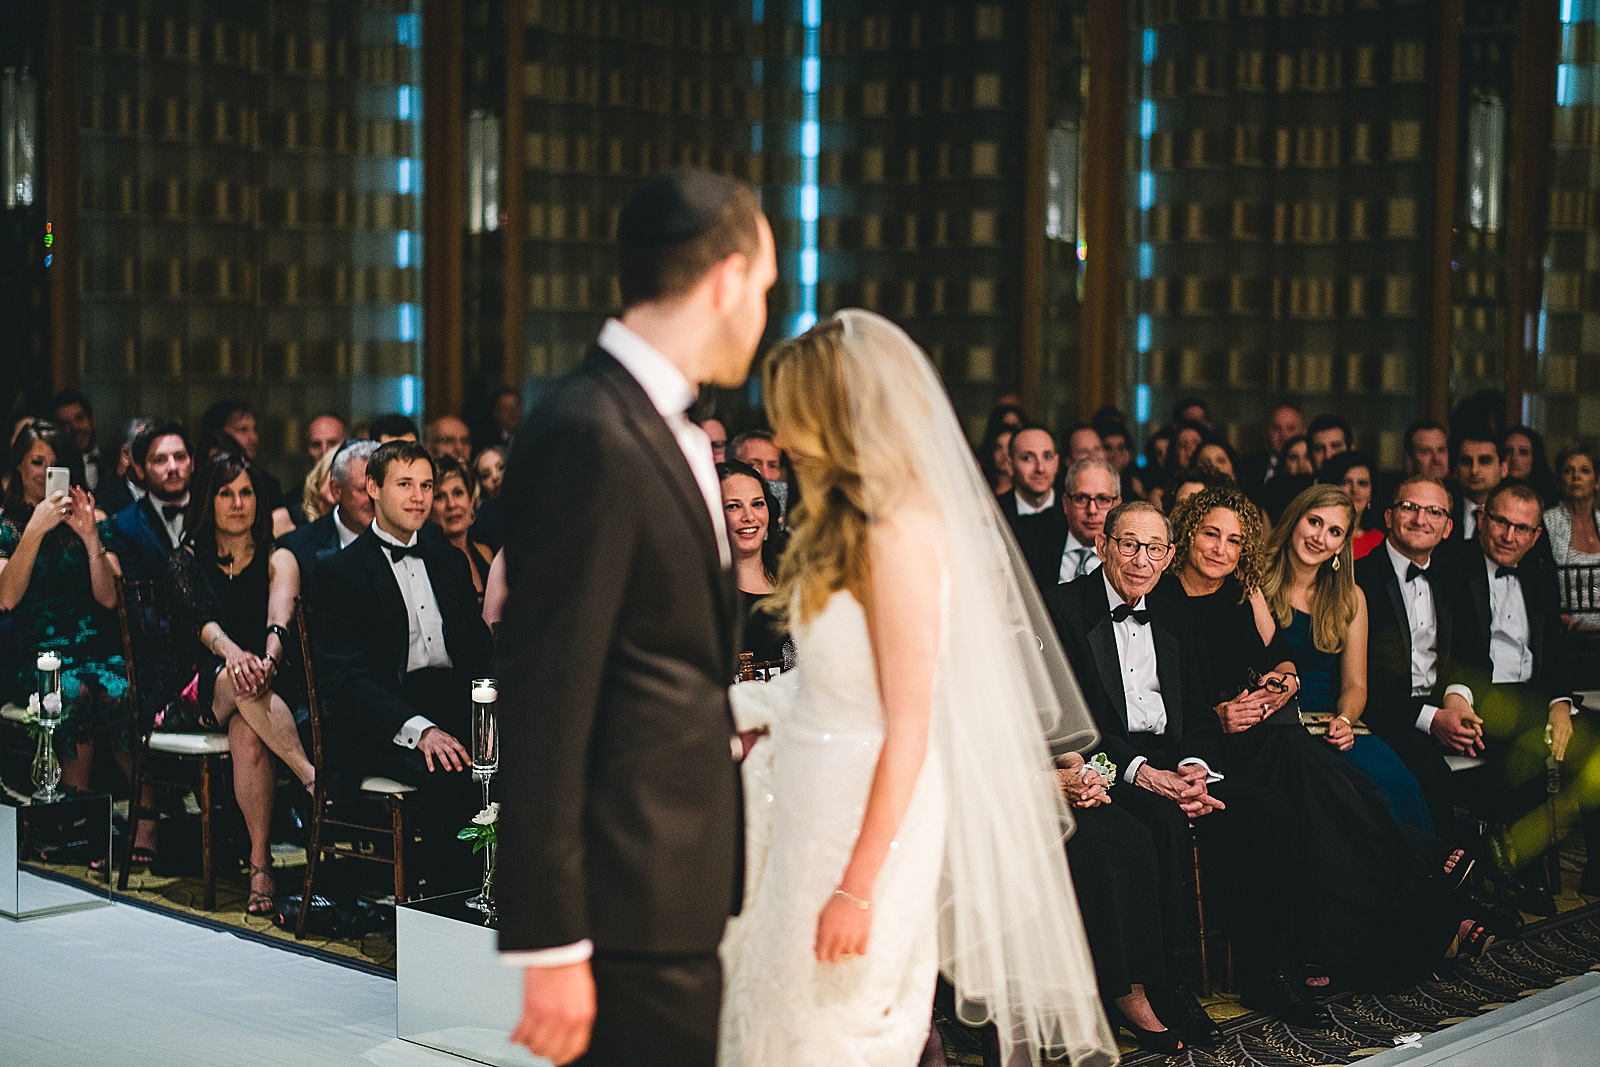 36 best jewish wedding photos - Susie + Eric's Jewish Wedding at the Peninsula Hotel in Chicago